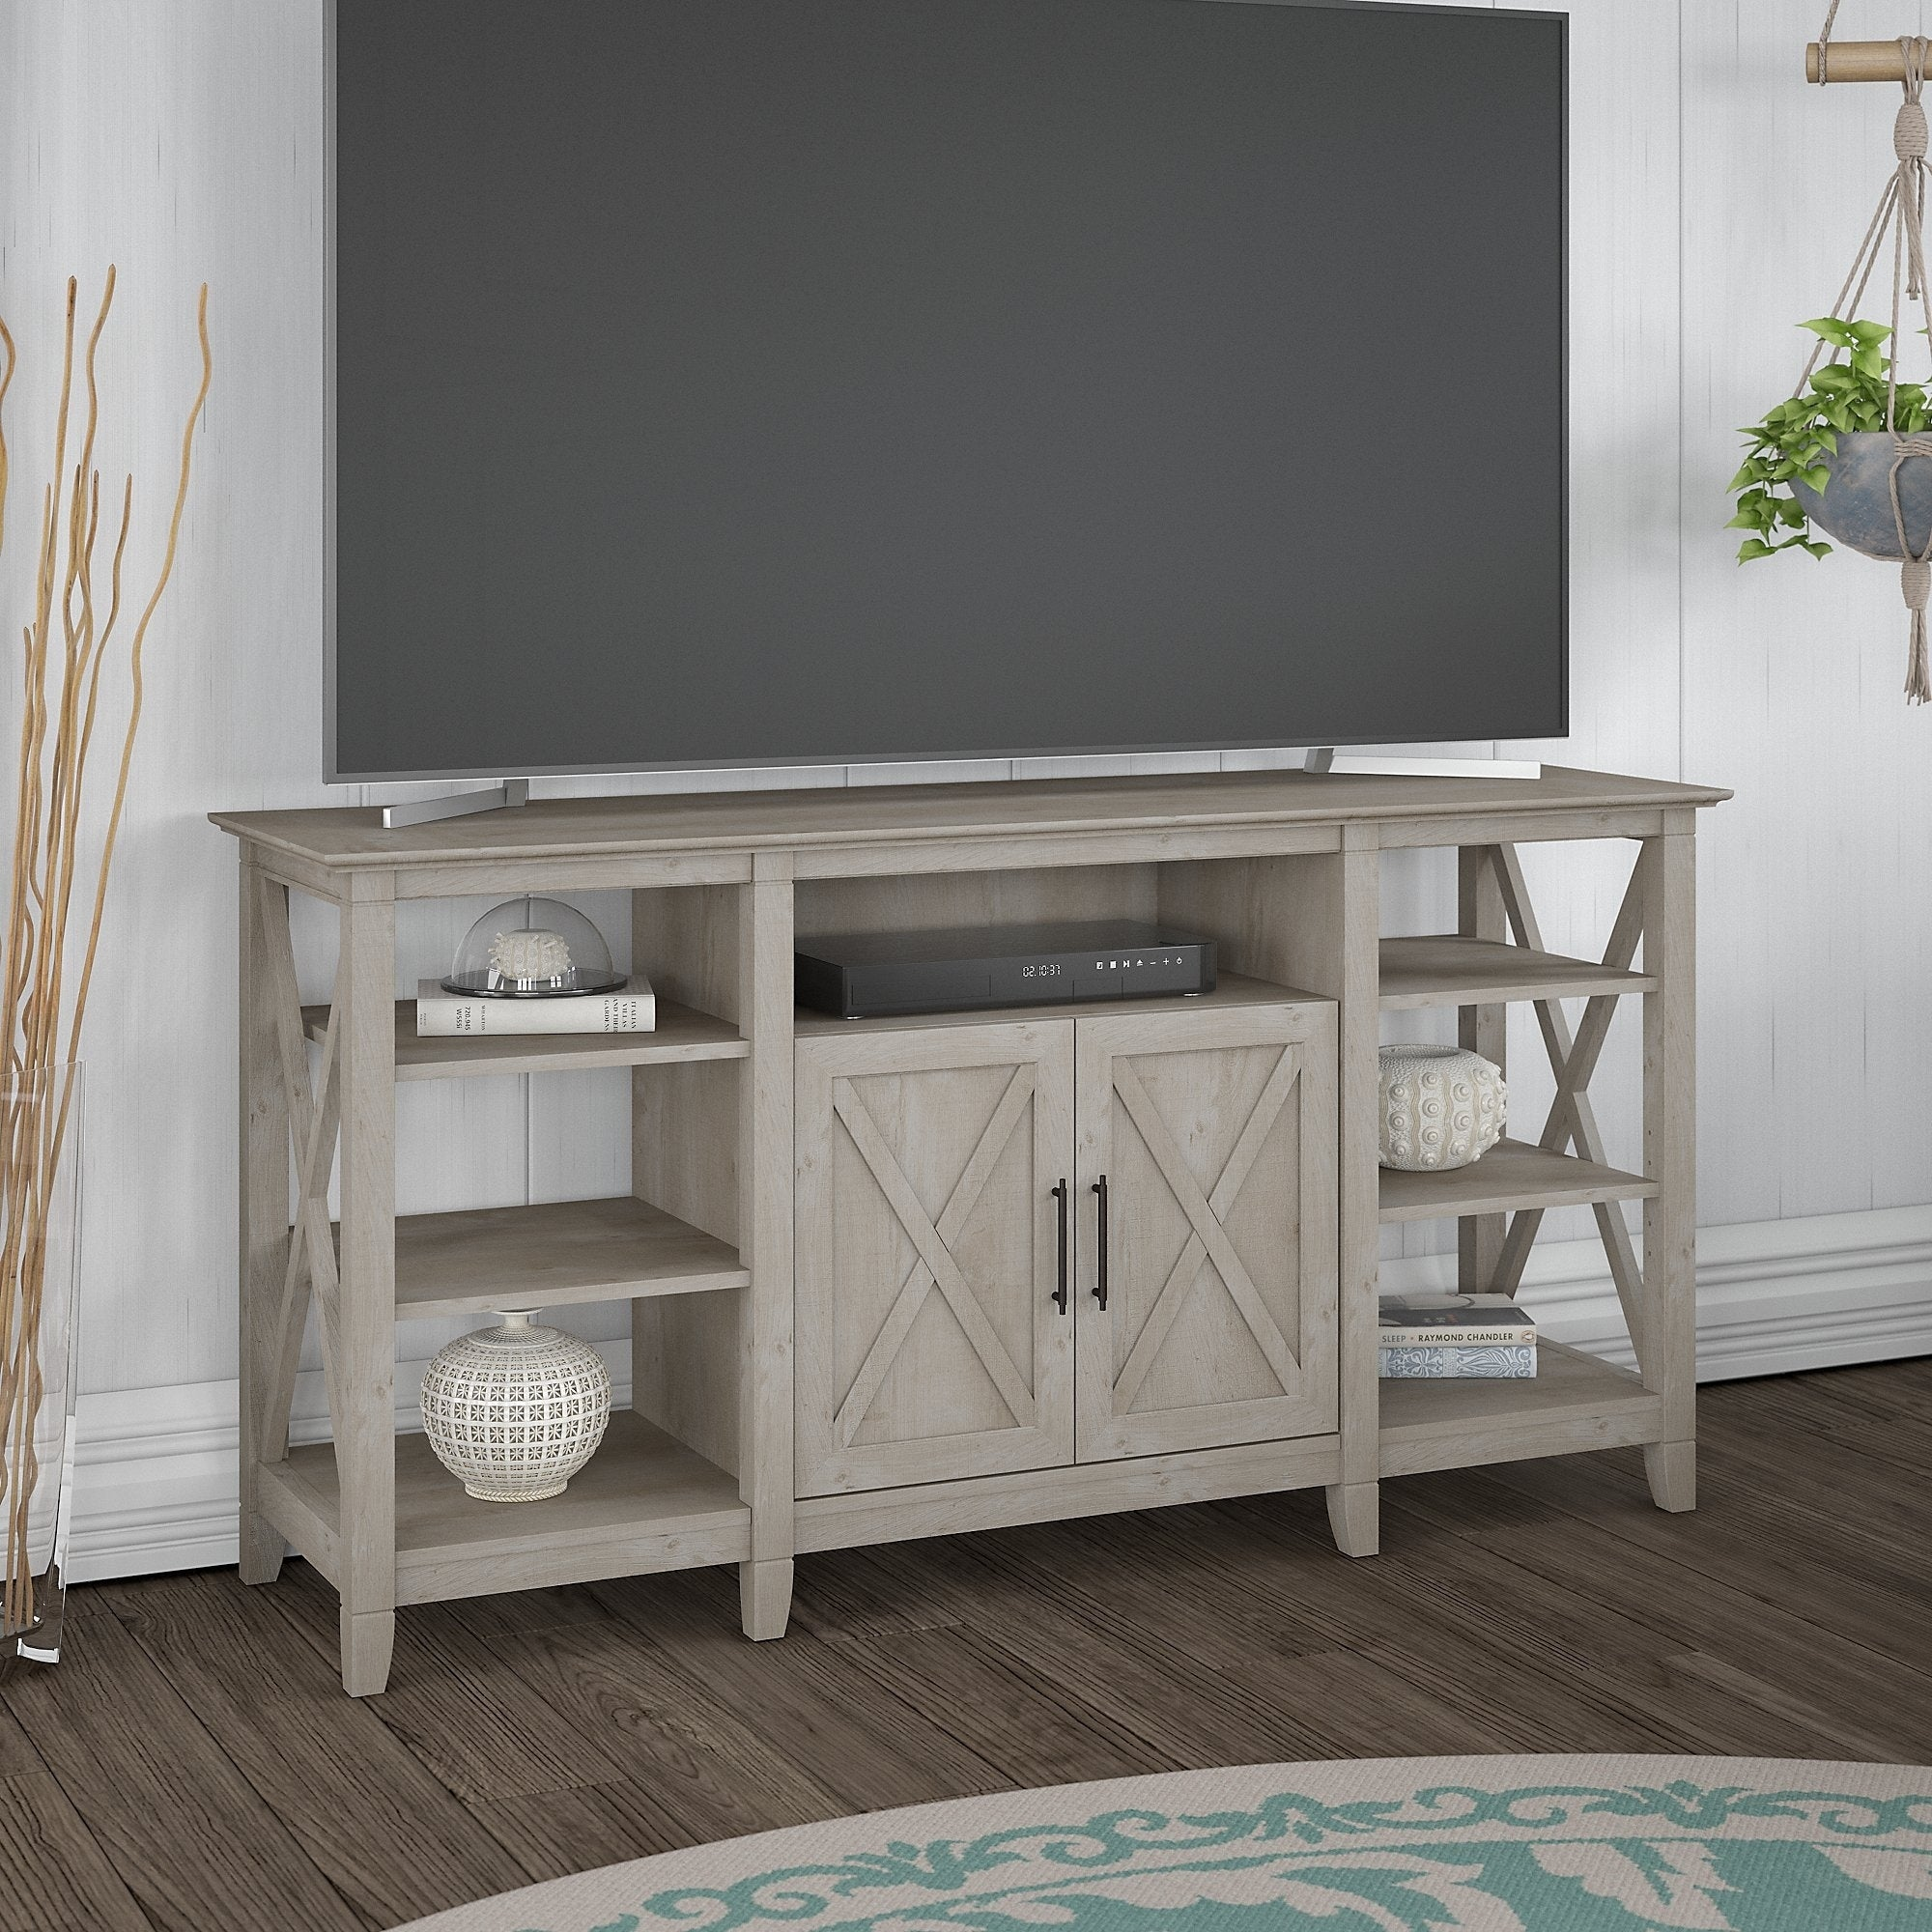 The Gray Barn Tall Tv Stand For 65 Inch Tv Overstock 30068576